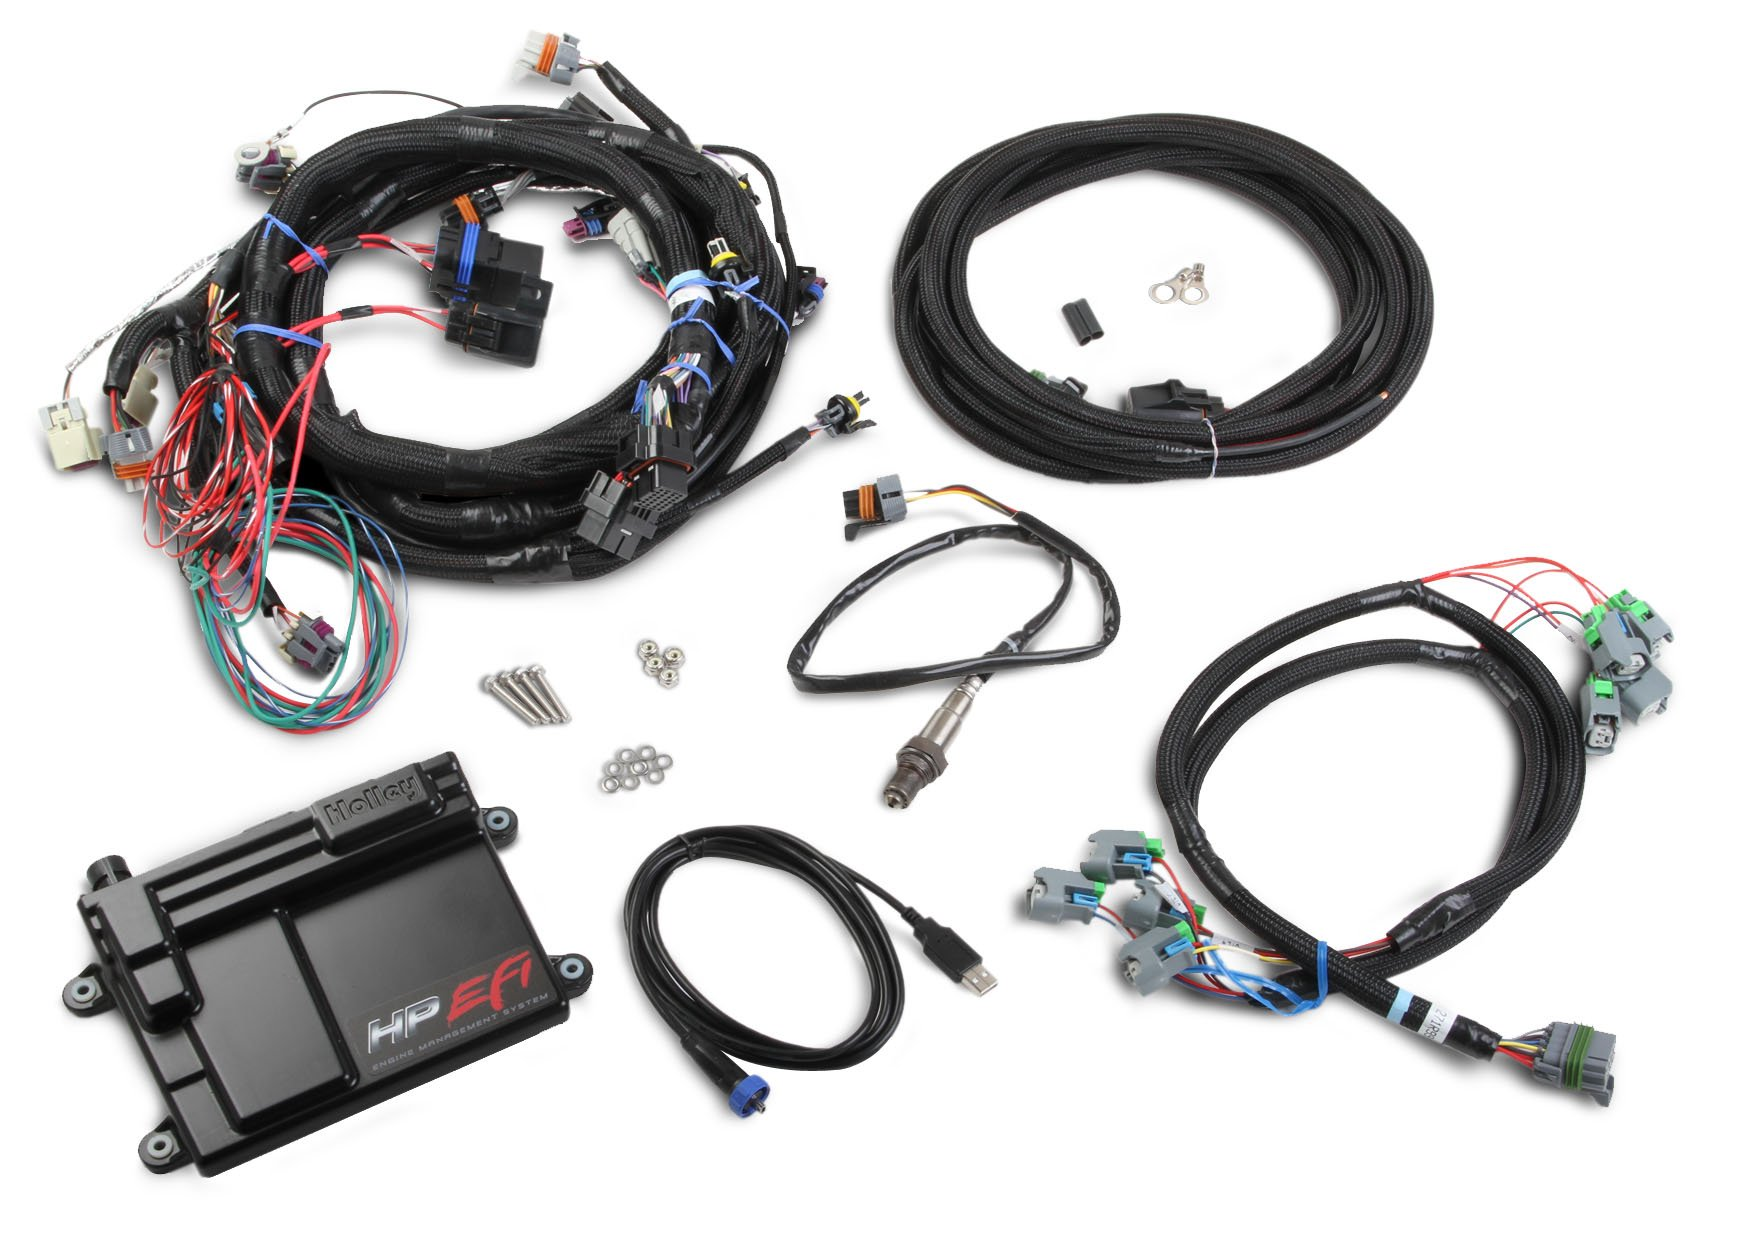 hight resolution of hp efi ecu harness kits